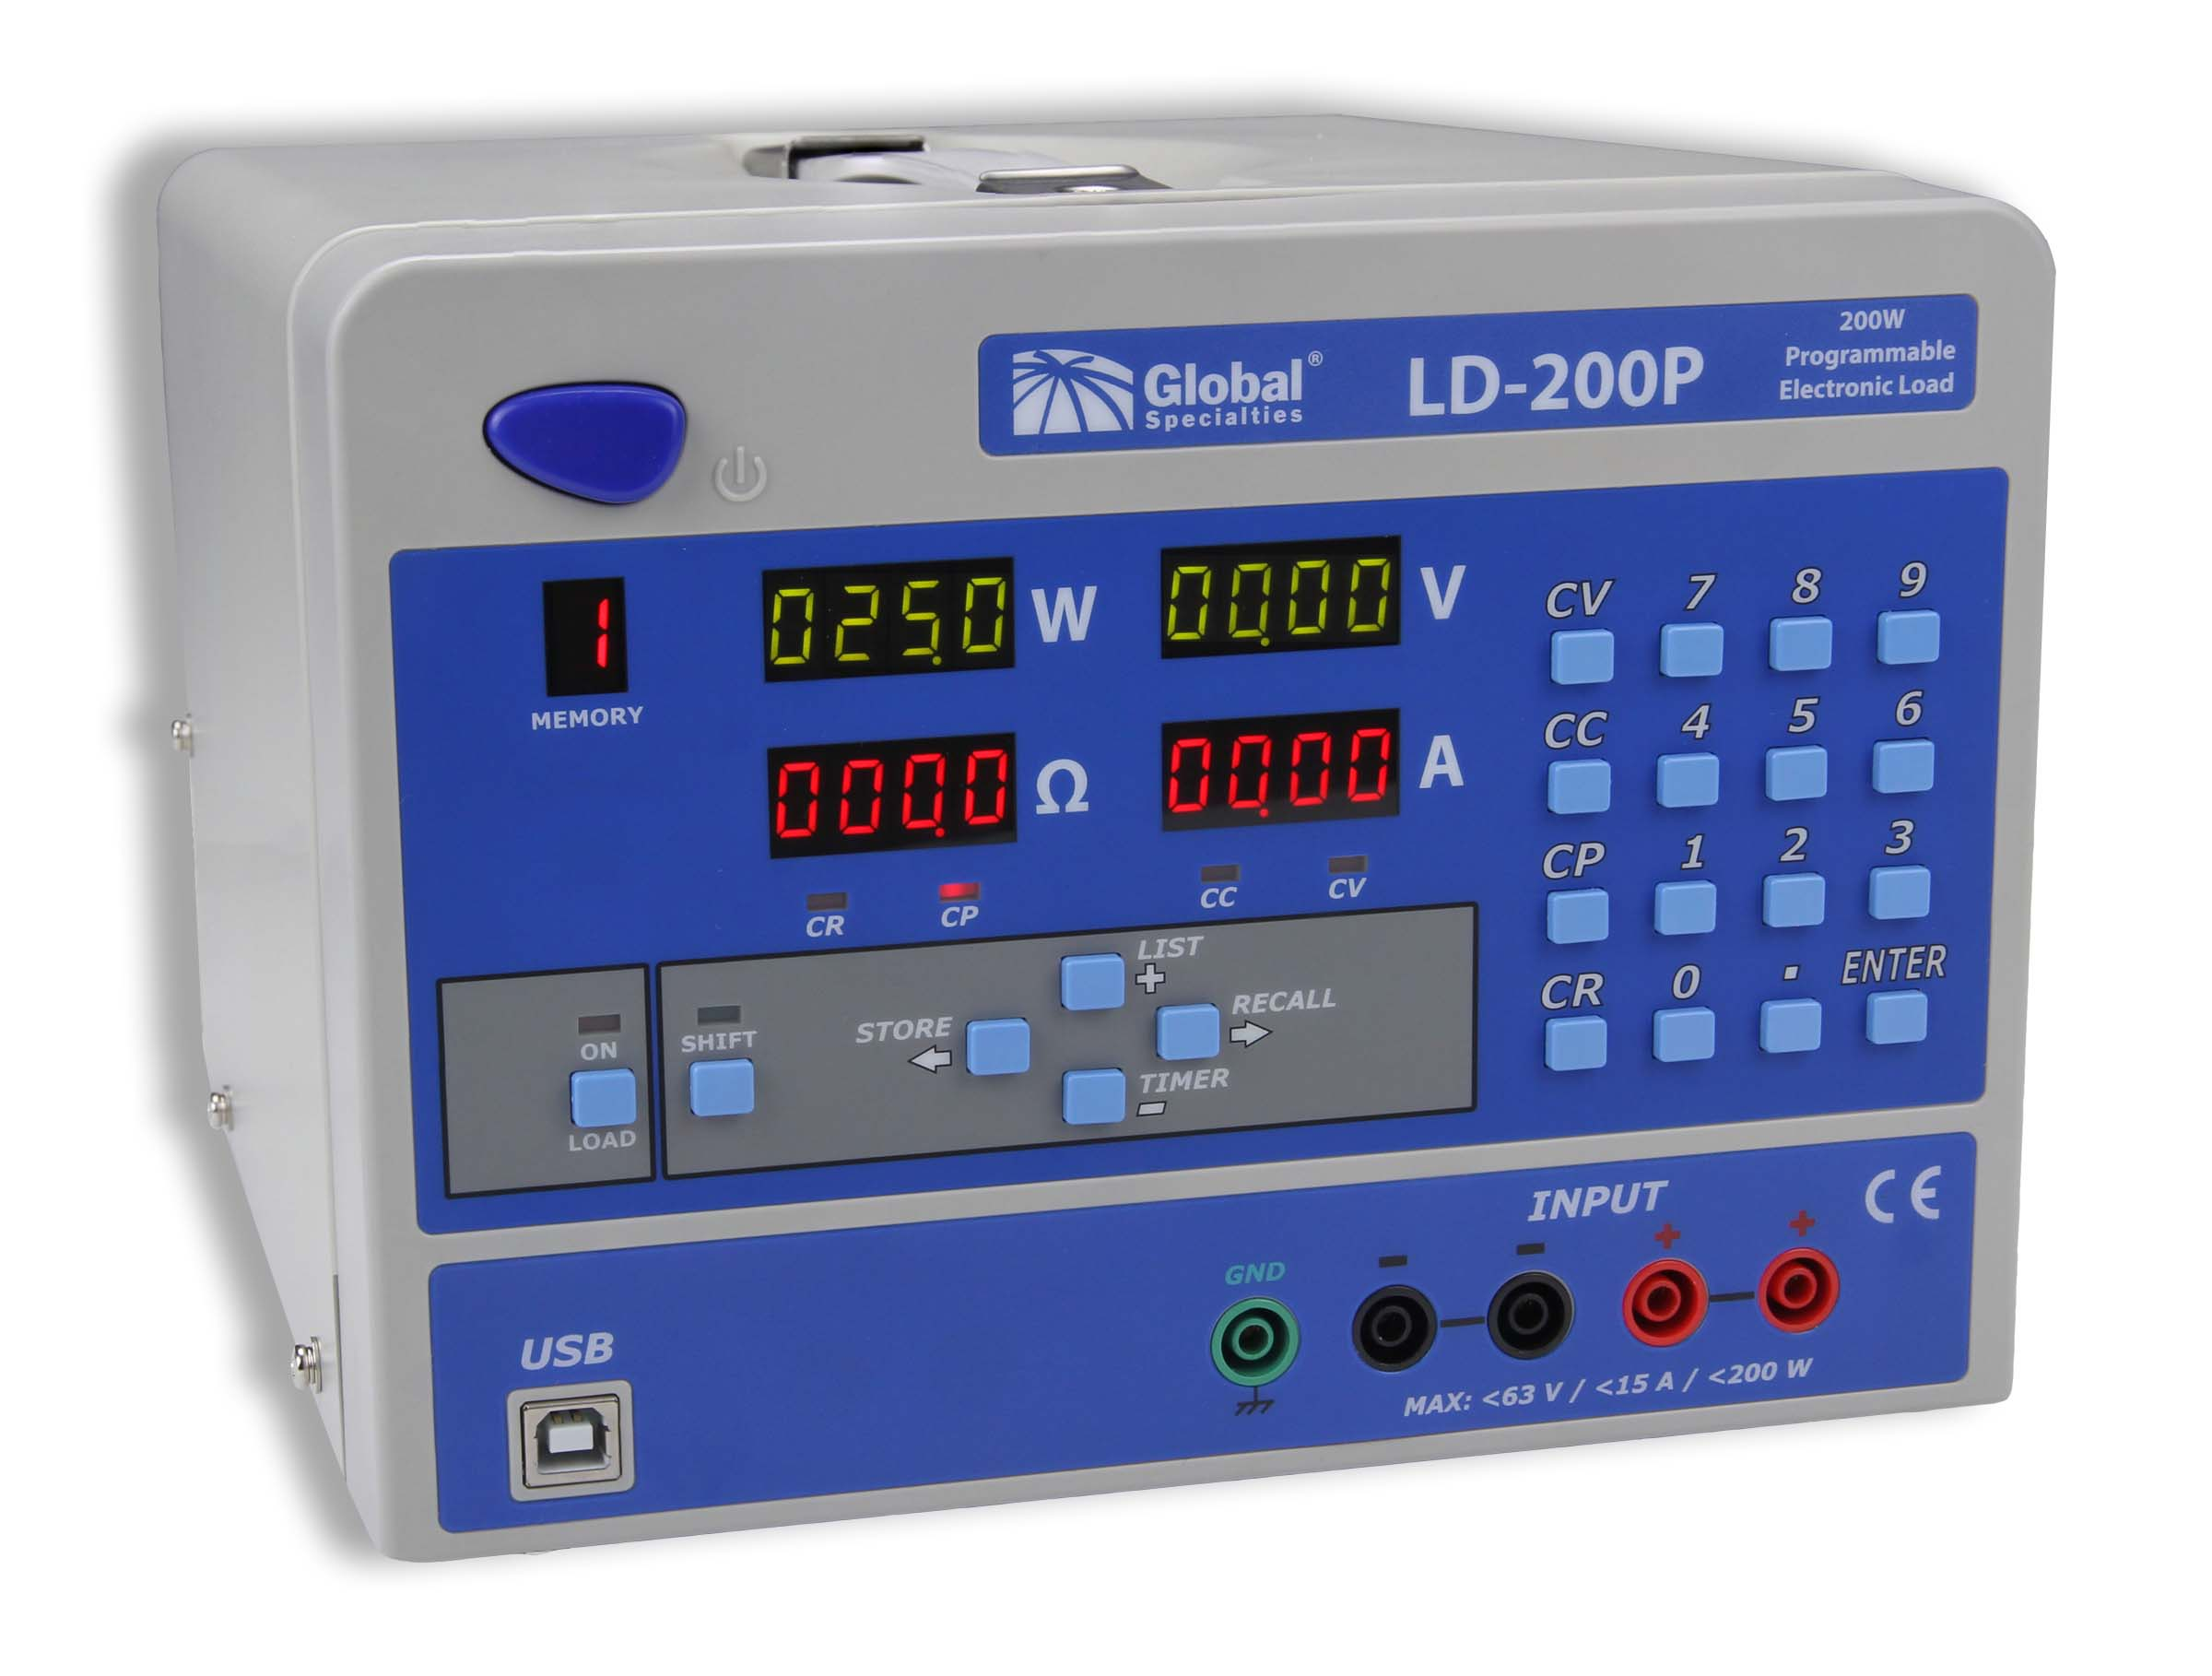 Global Specialties LD-200P 200 W Programmable Electronic Load  Photo